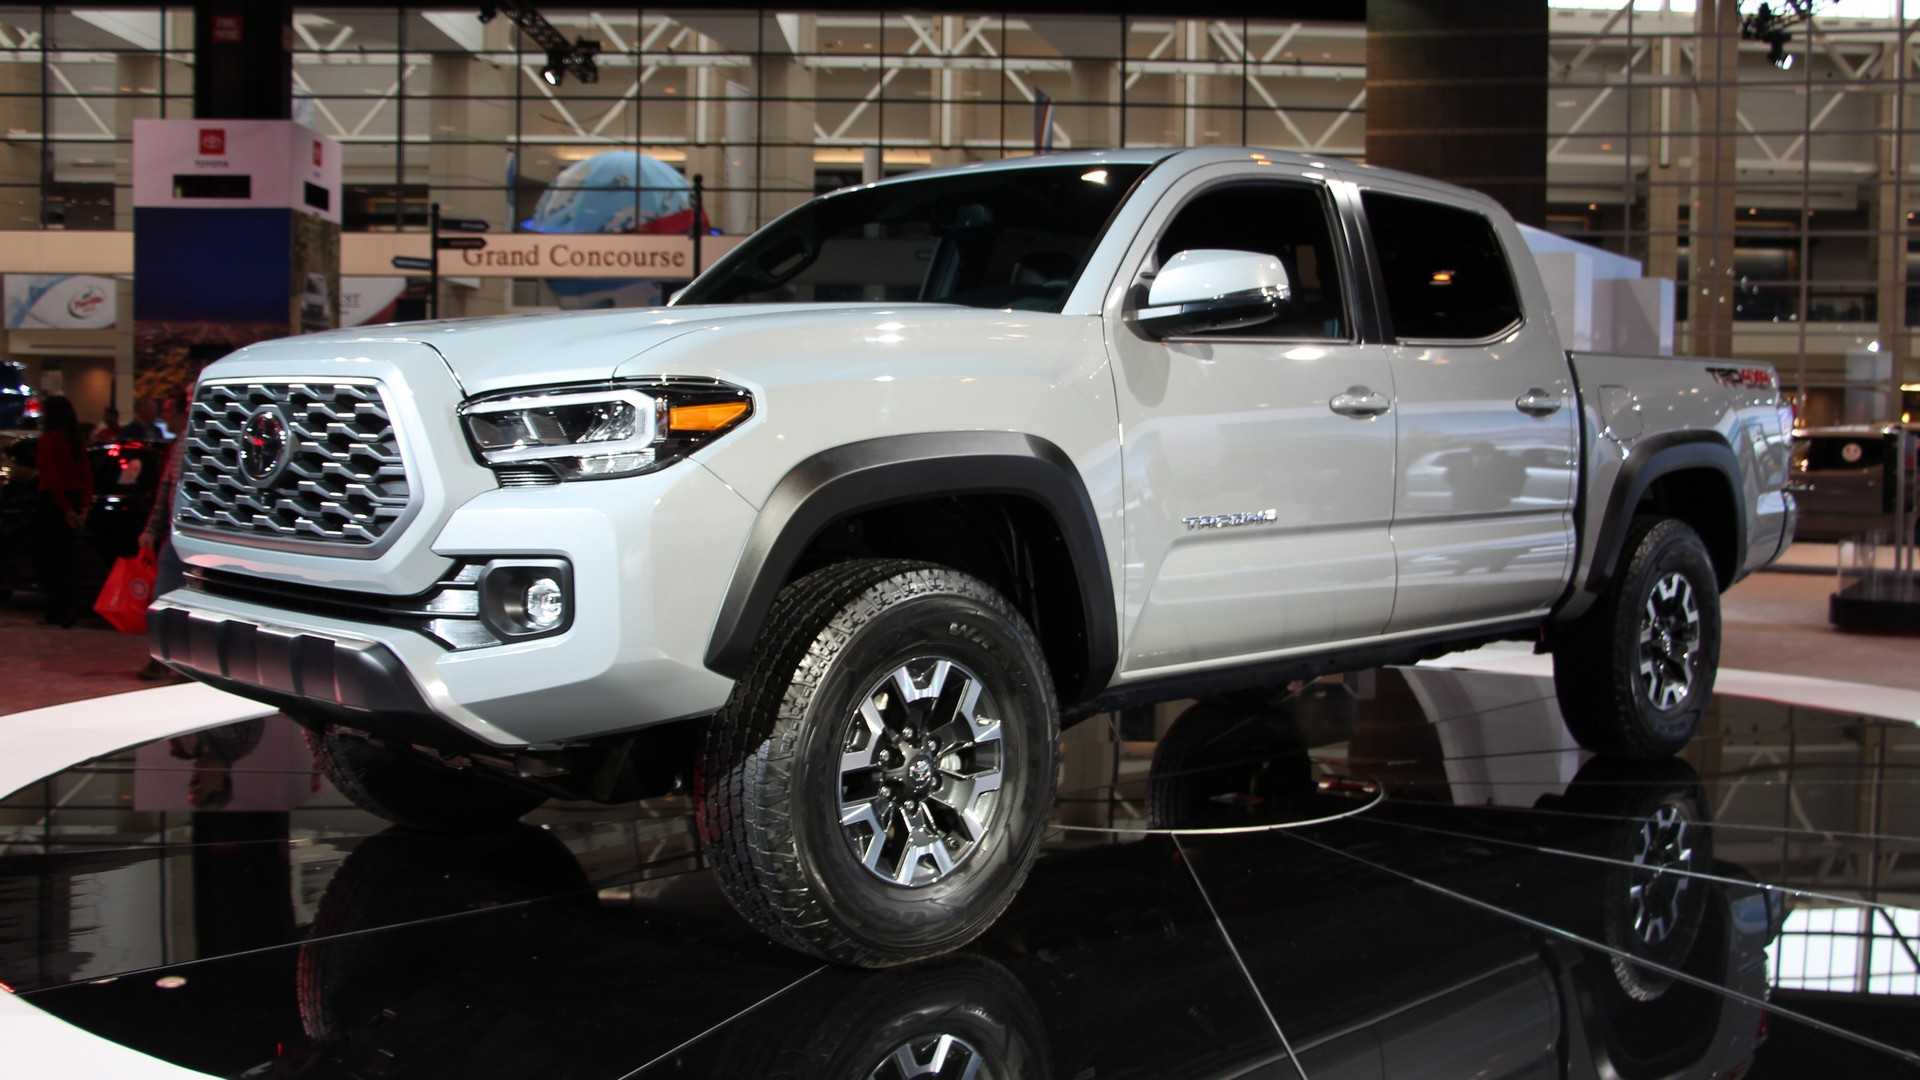 43 All New 2020 Toyota Tacoma Price and Review